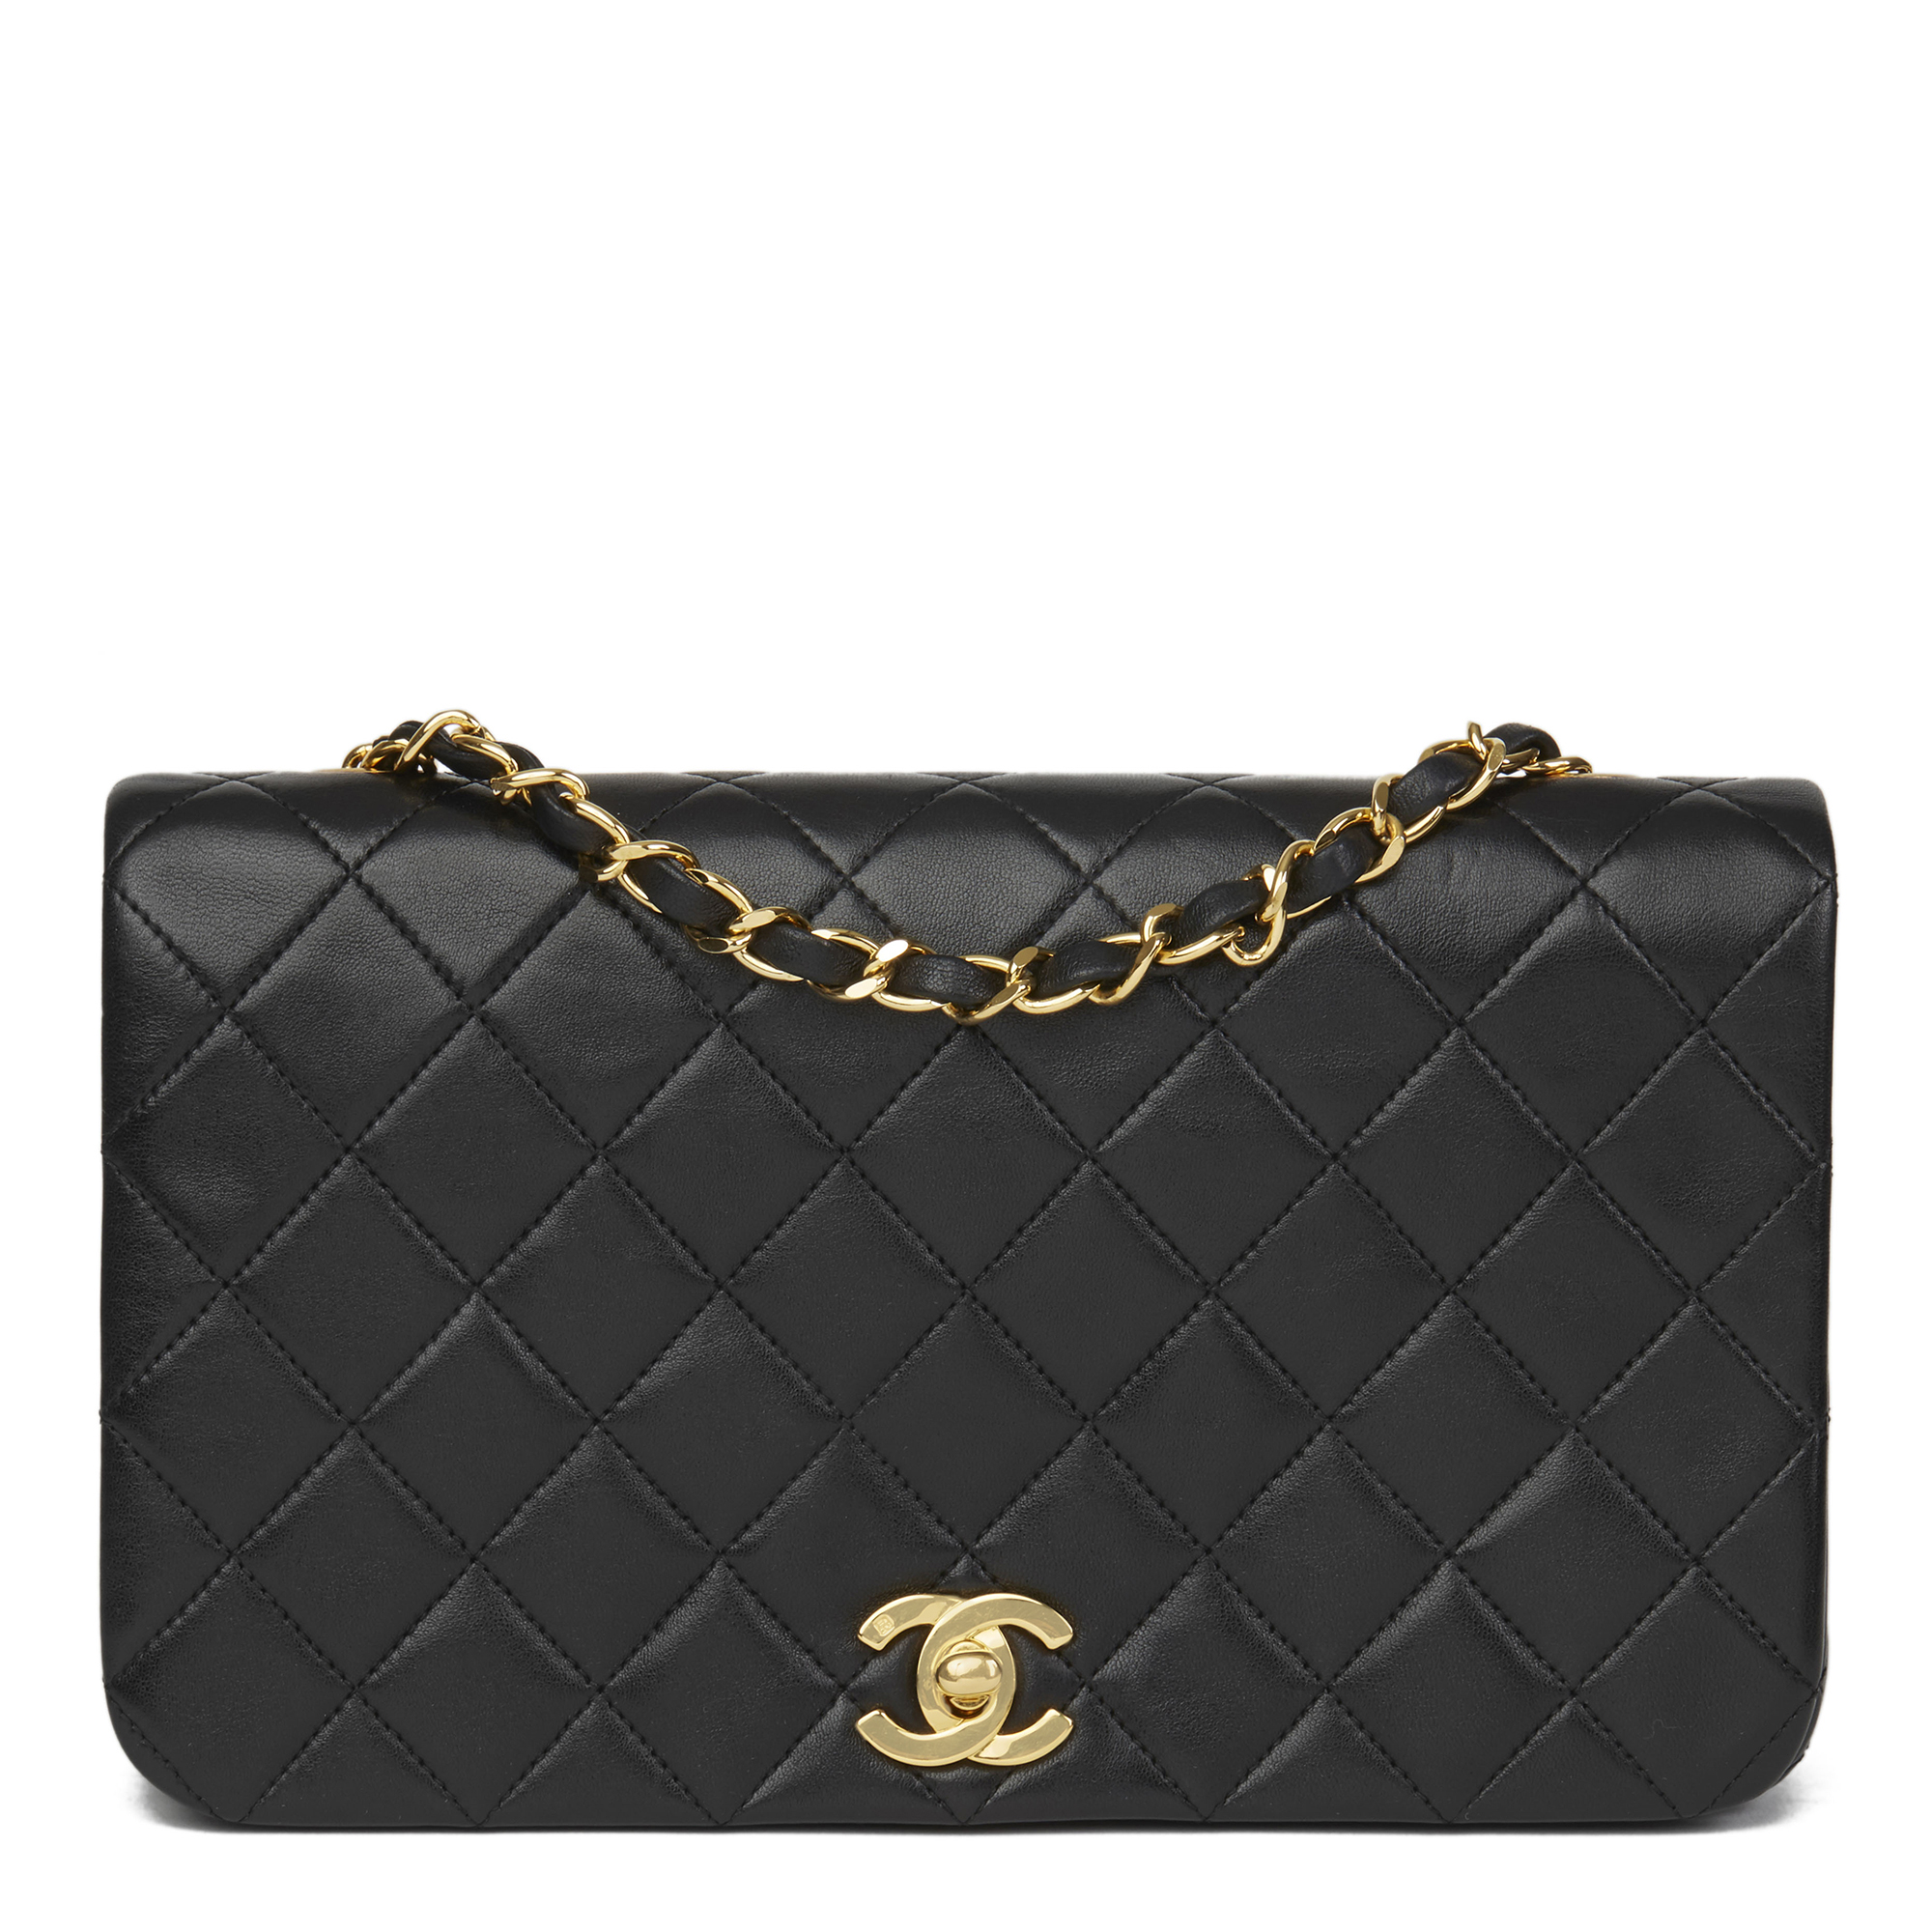 dc862de3f984 CHANEL BLACK QUILTED LAMBSKIN VINTAGE SMALL CLASSIC SINGLE FULL FLAP ...